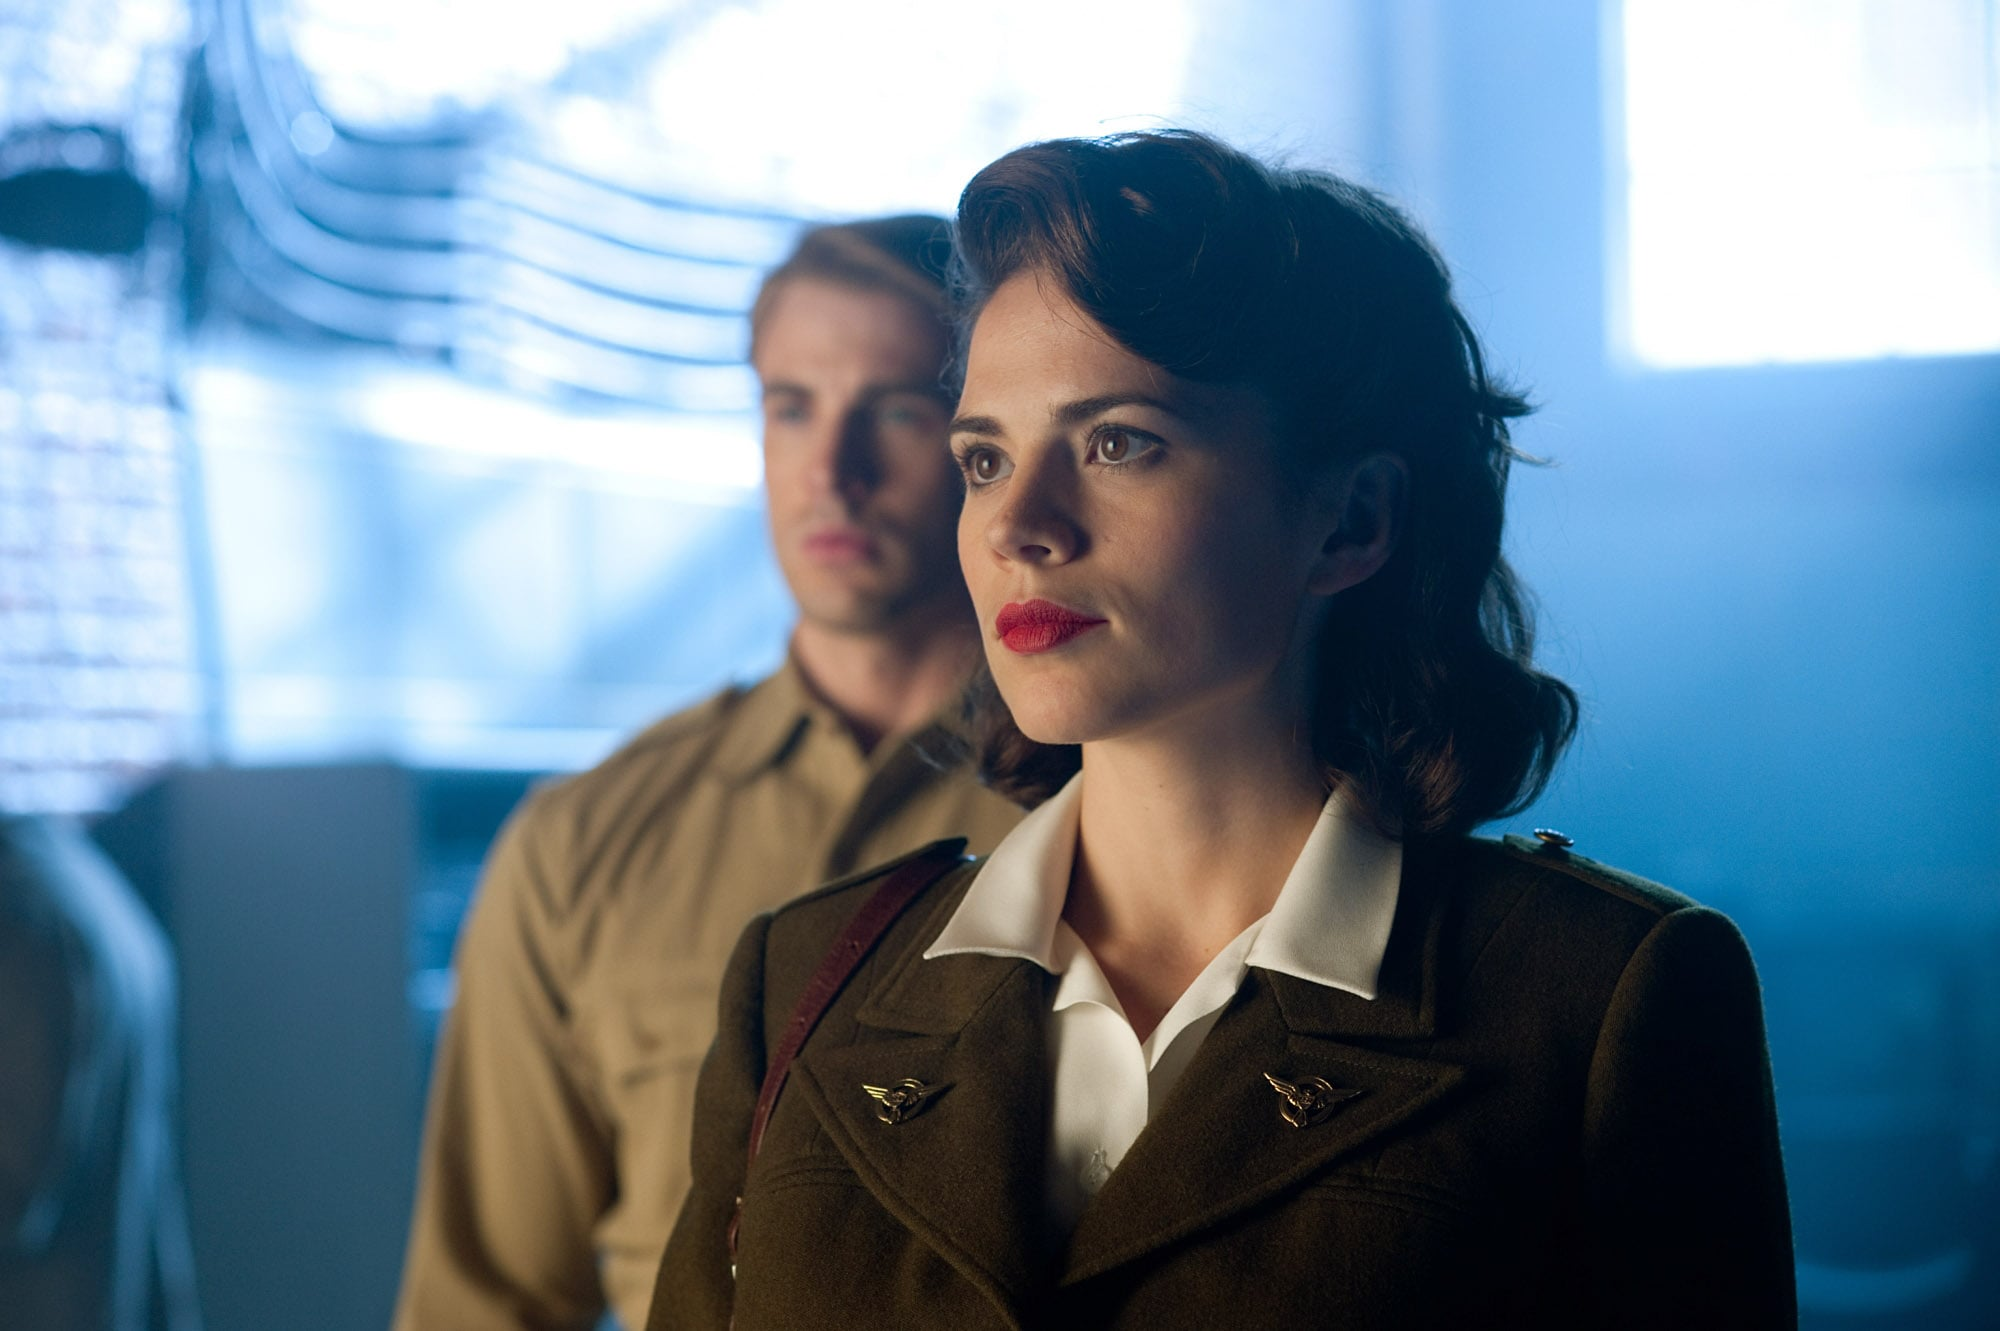 CAPTAIN AMERICA: THE FIRST AVENGER, Hayley Atwell, 2011. Ph: Jay Maidment/Marvel Studios2011 MVLFFLLC. TM &2011 Marvel. All Rights Reserved./Paramount Pictures/Courtesy Everett Collection